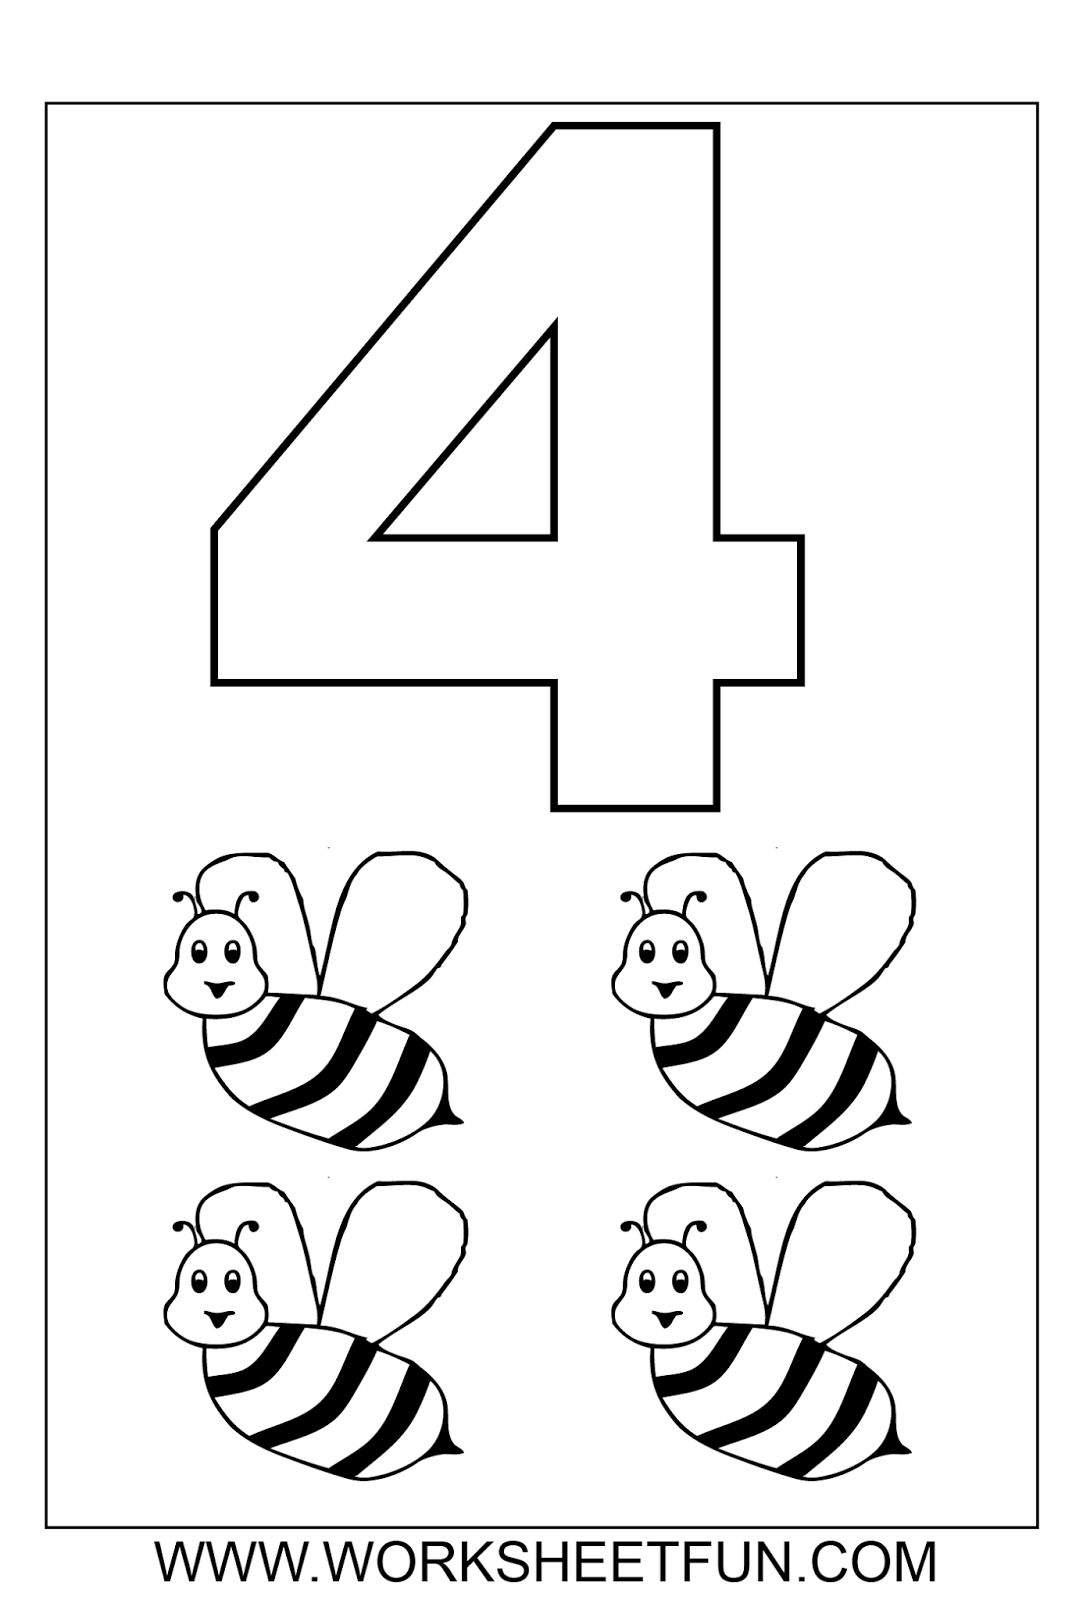 16 Best Images Of Number 16 Worksheets For Preschoolers